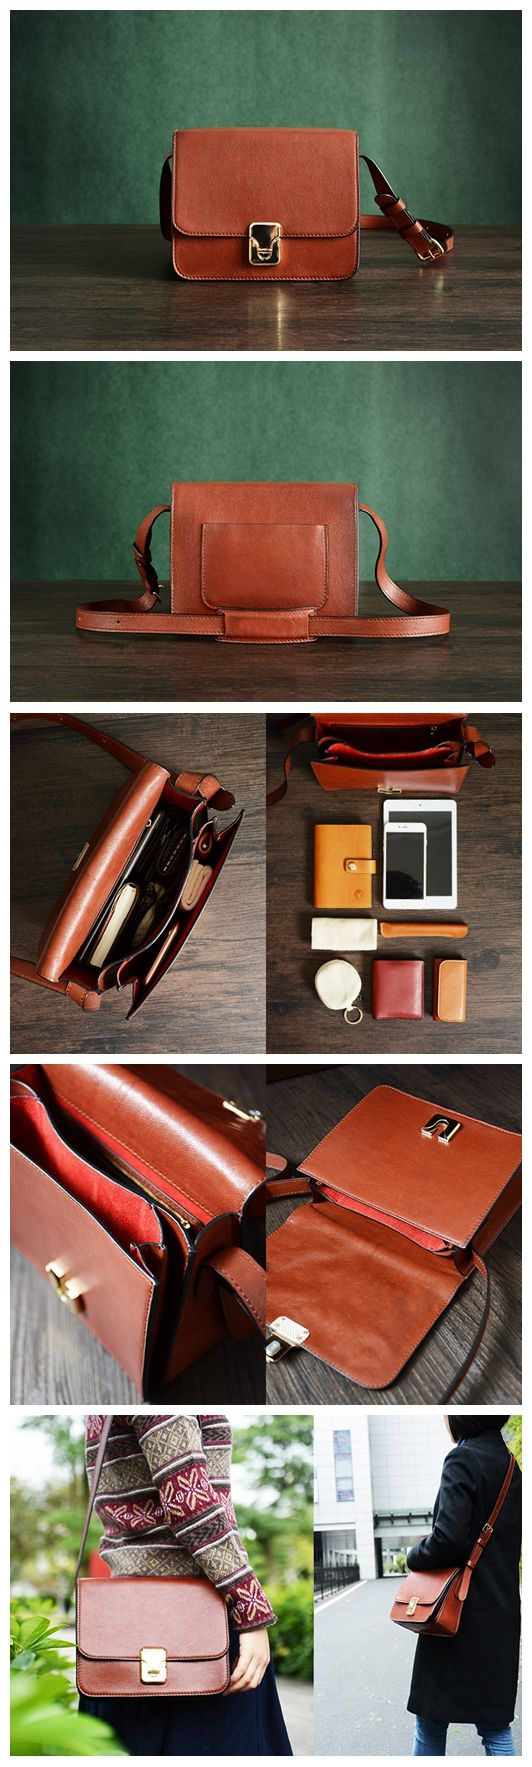 Custom Handmade Vegetable Tanned Italian Leather Satchel Bag Shoulder Bag Women Pouch Bag